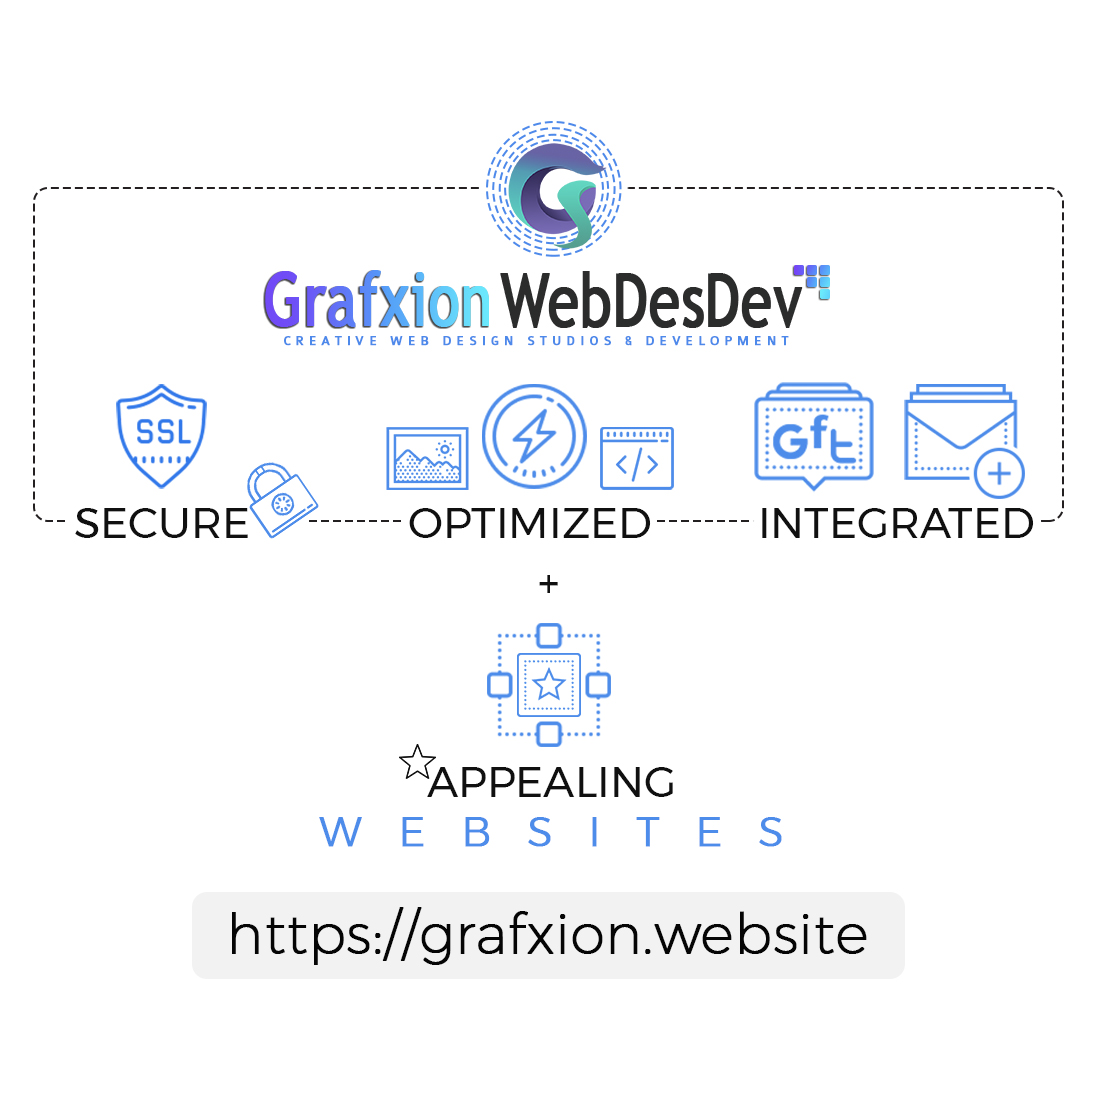 Grafxion WebDesDev Secure Optimized Integrated Appealing Website Design